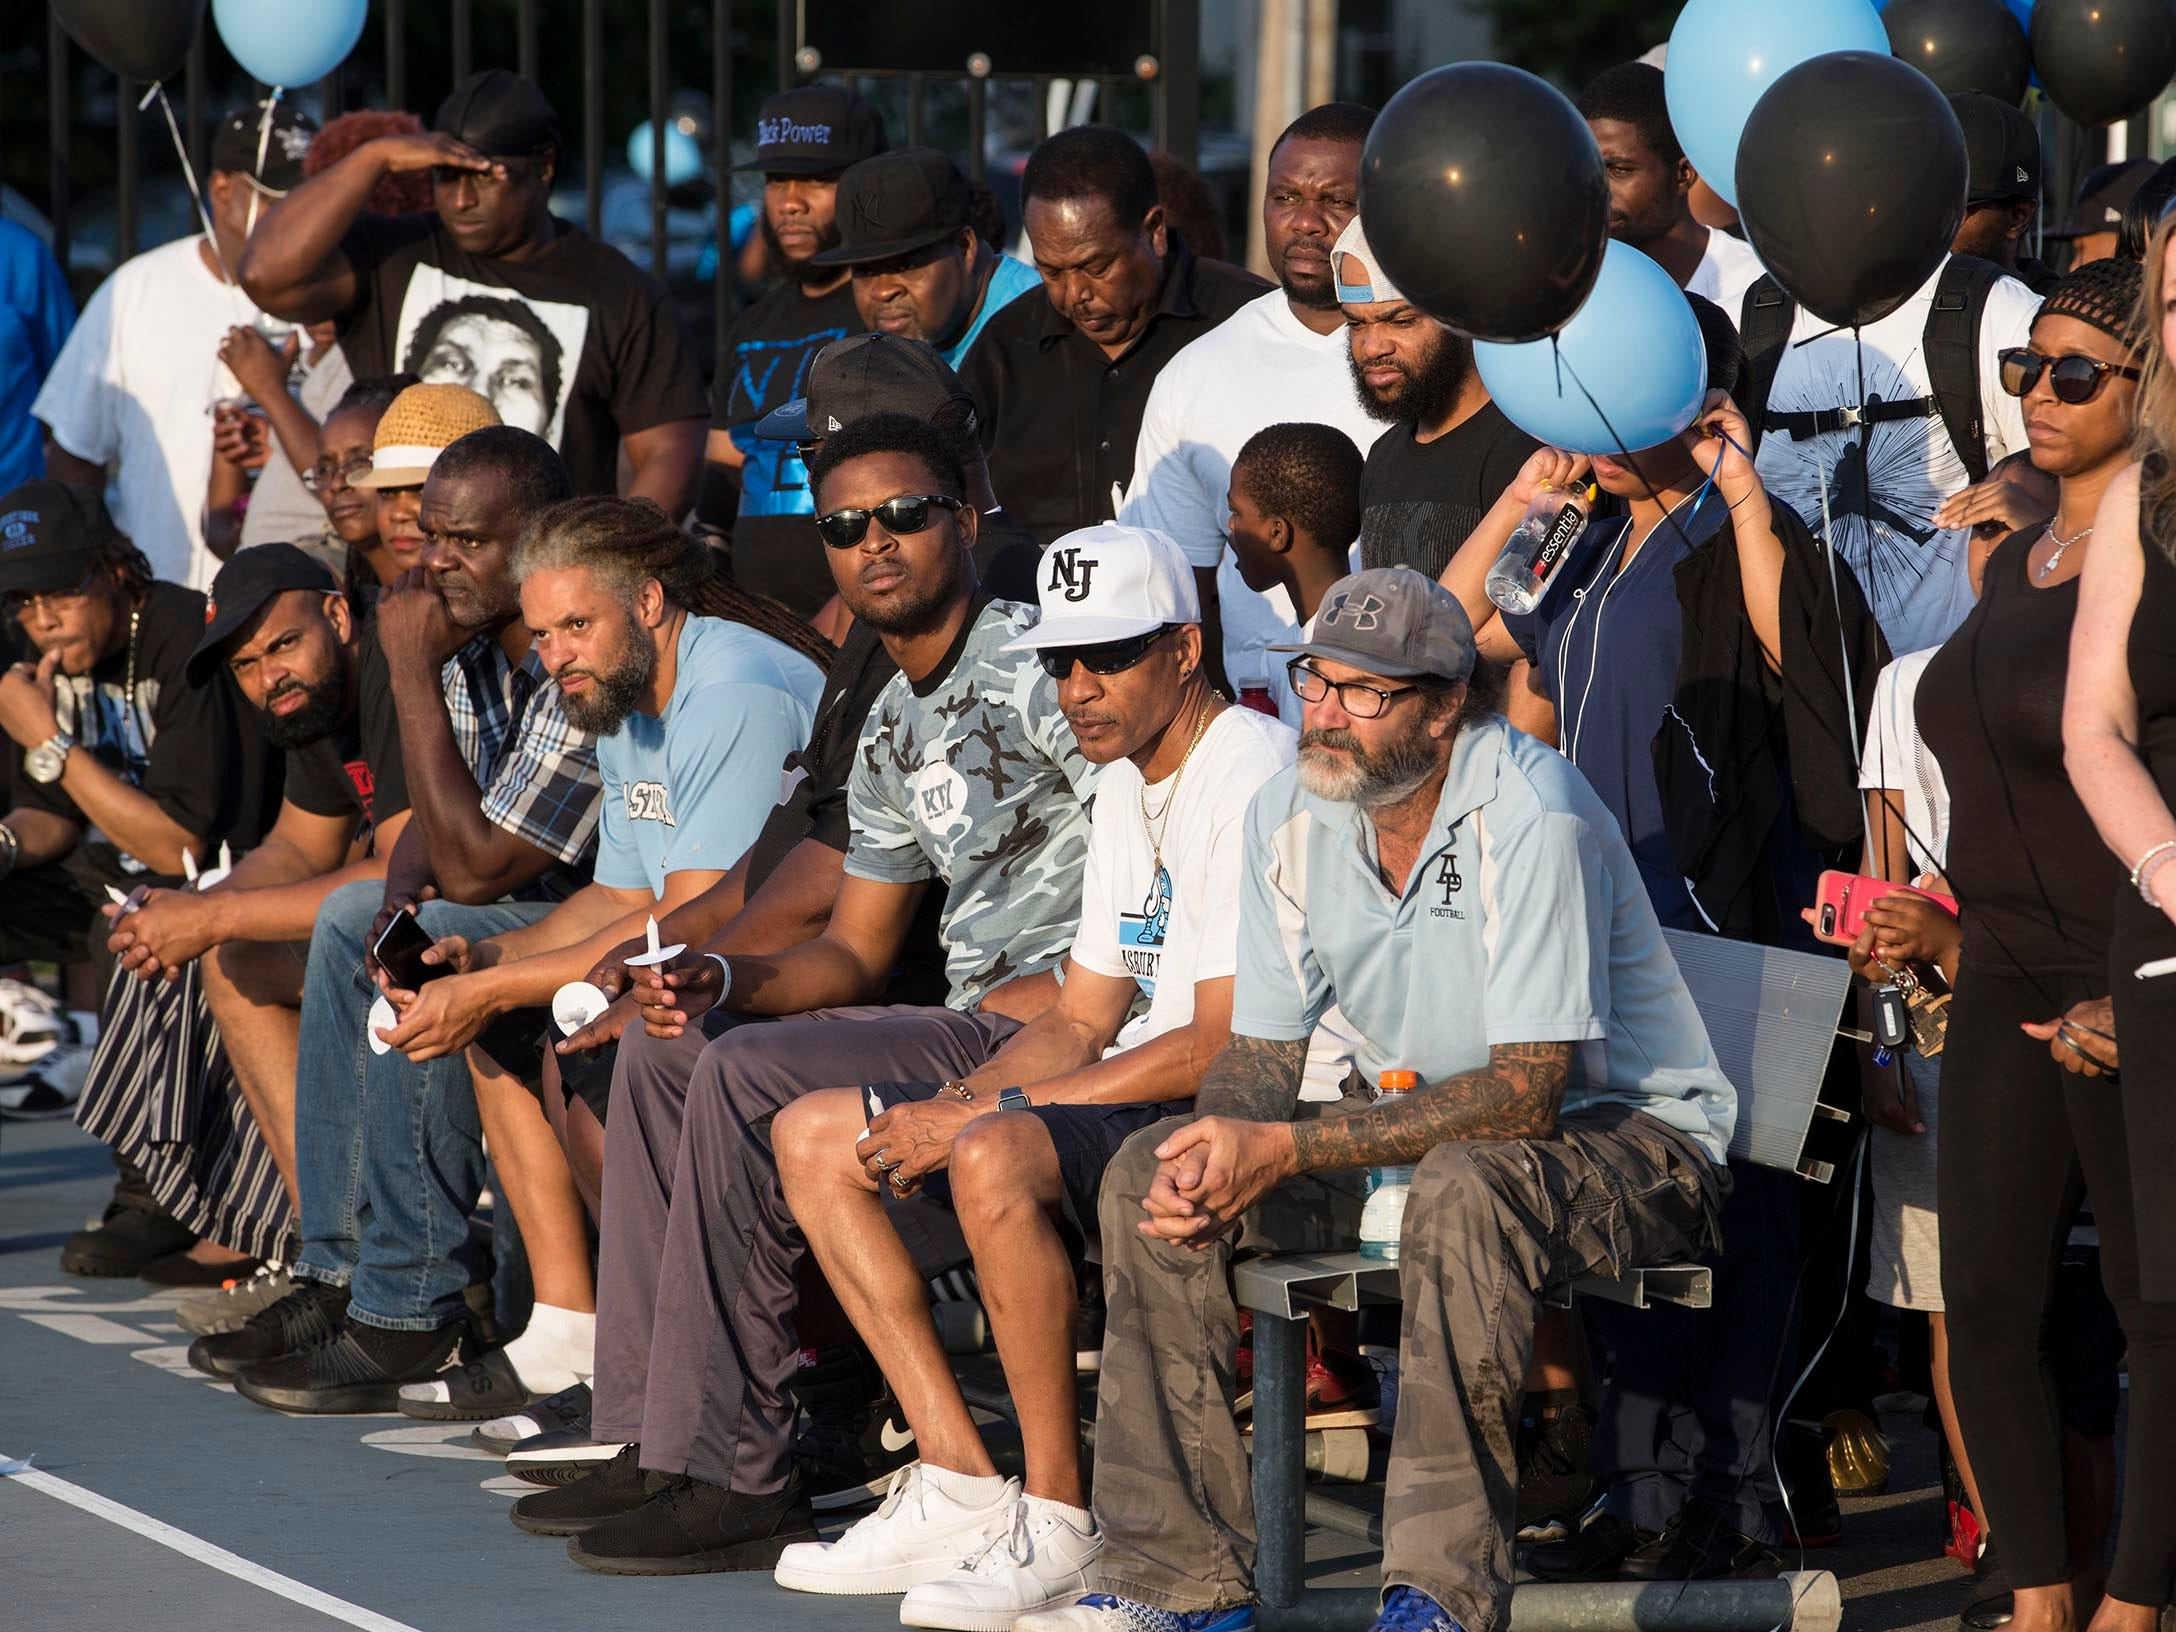 Members of the Asbury Park community come together at the Donald Hammary Basketball Courts to remember the life of James Famularo who lost his life in a fire this past week.  Asbury Park, NJ on Thursday, July 12, 2018